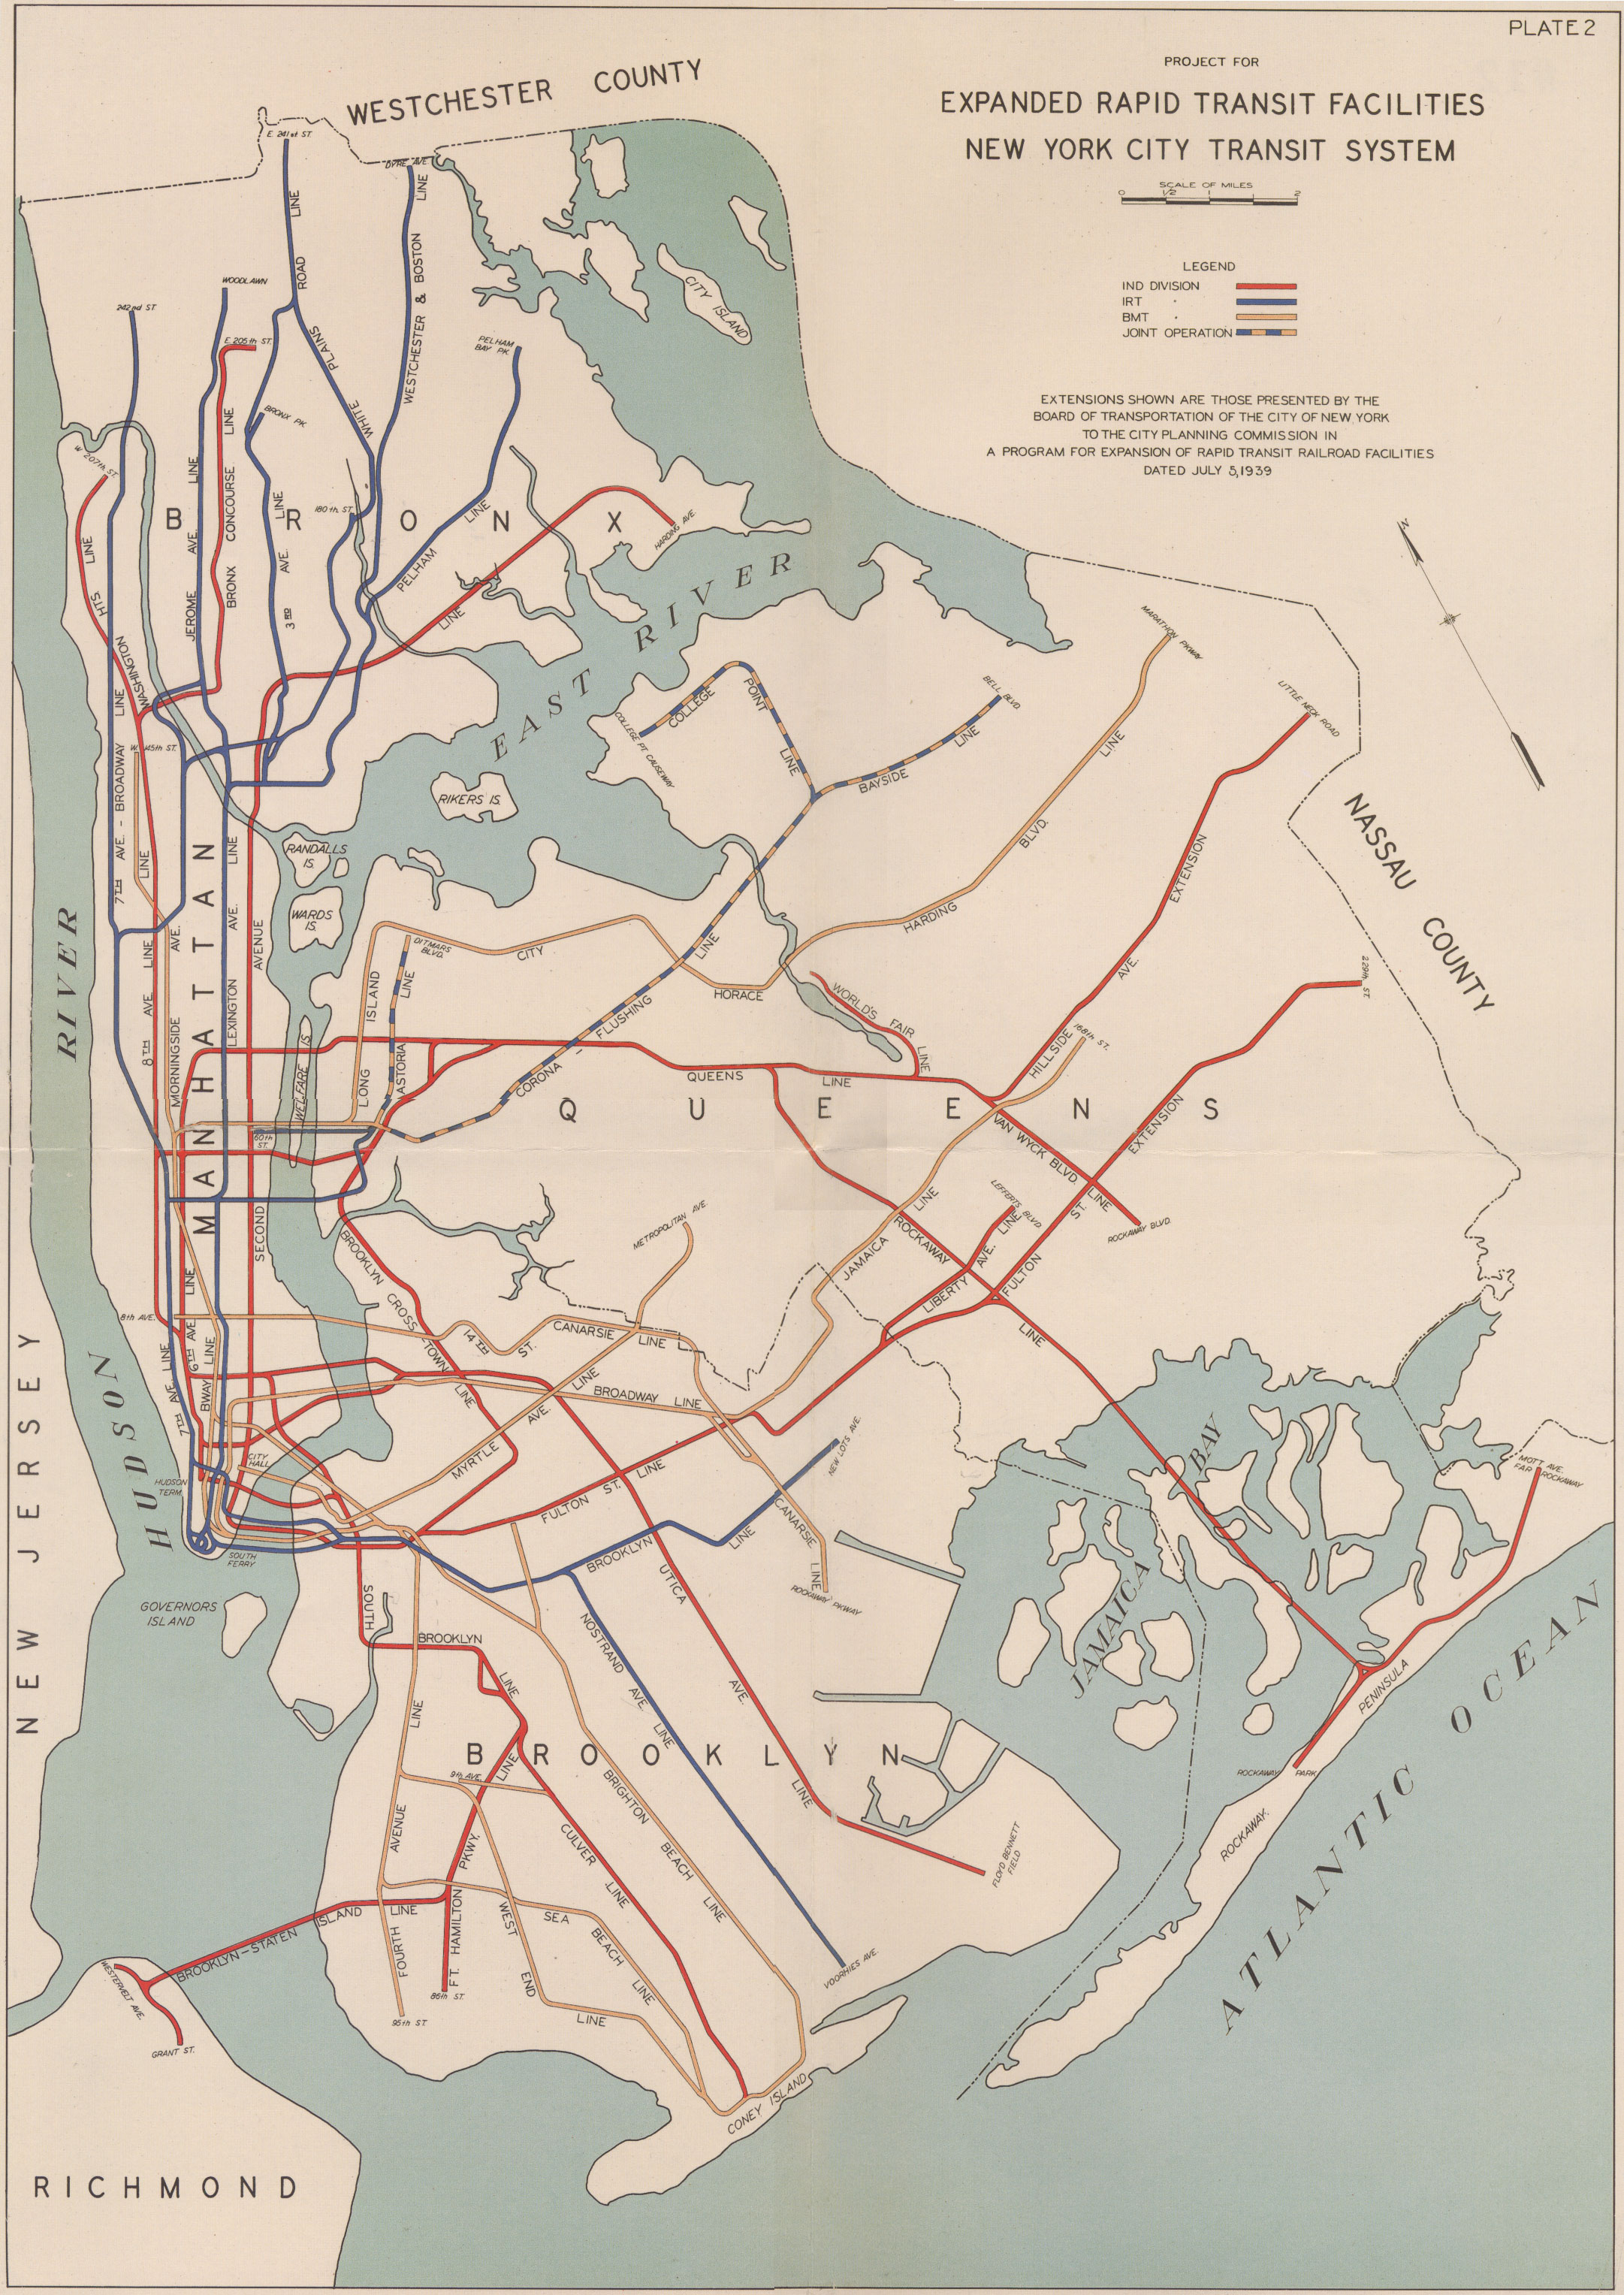 L Subway Map.Dreaming Of The Second System Where The Subways Should Go Second